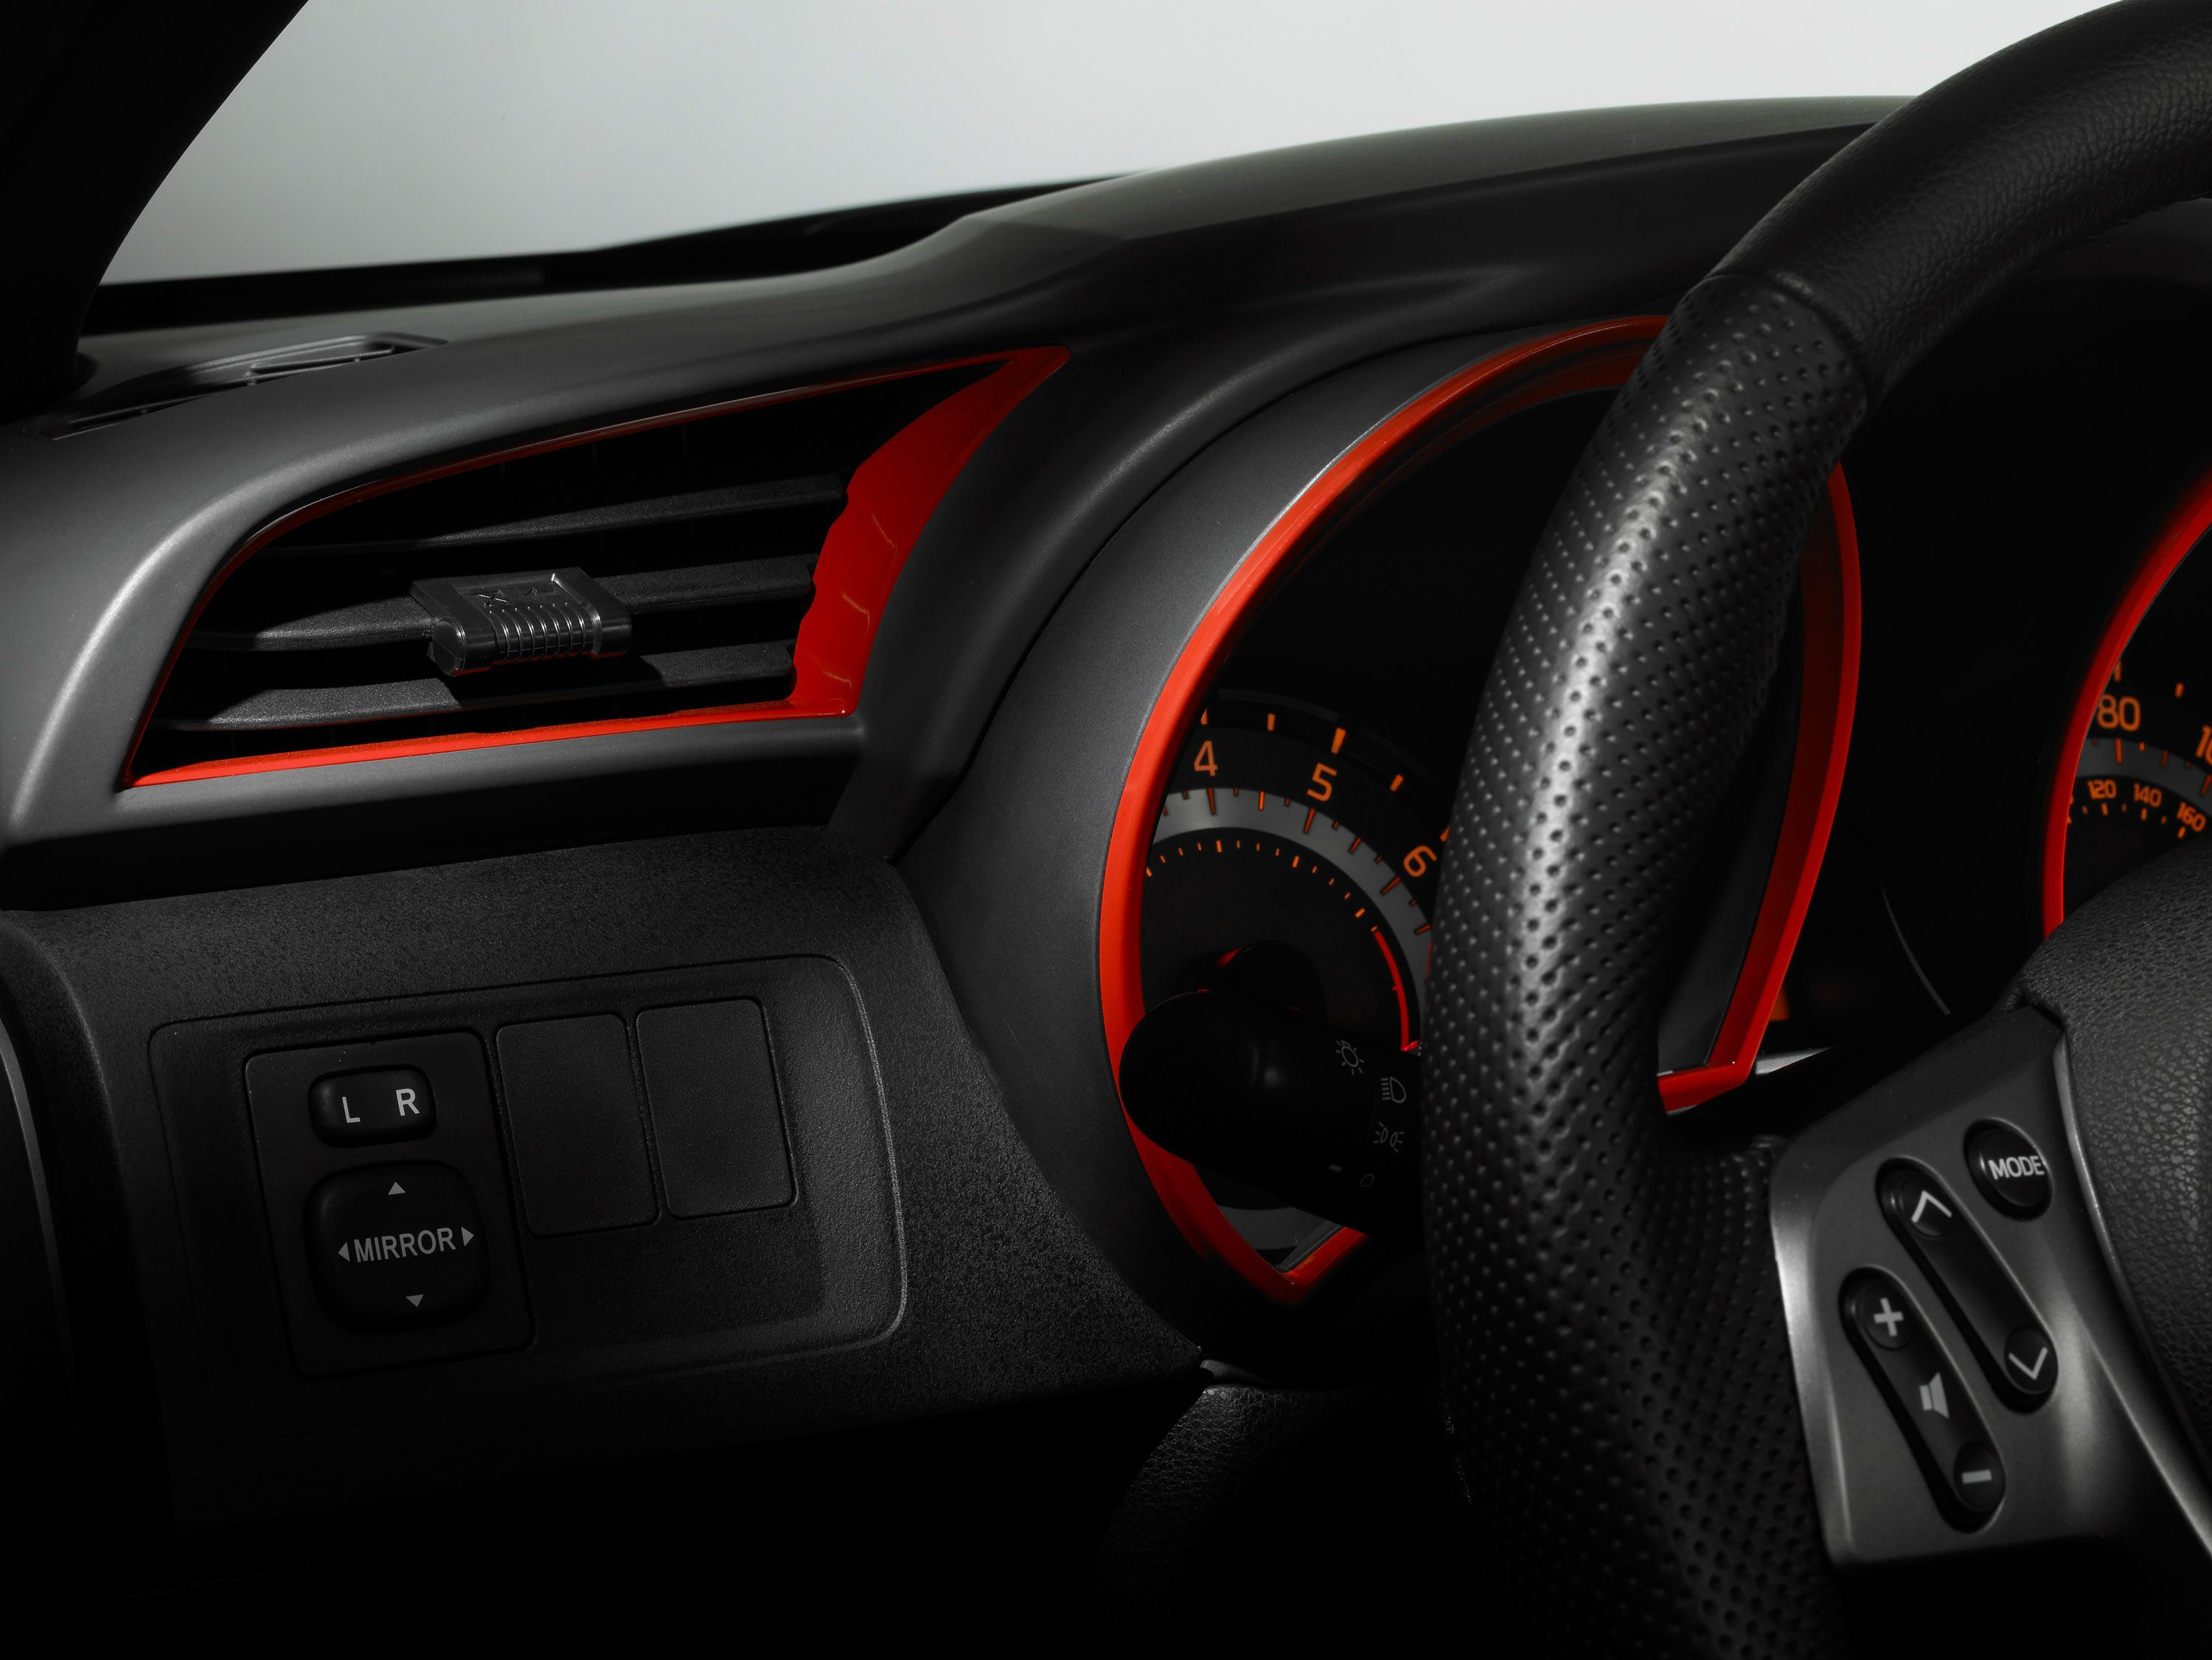 Car interior accessories for guys - Toyota